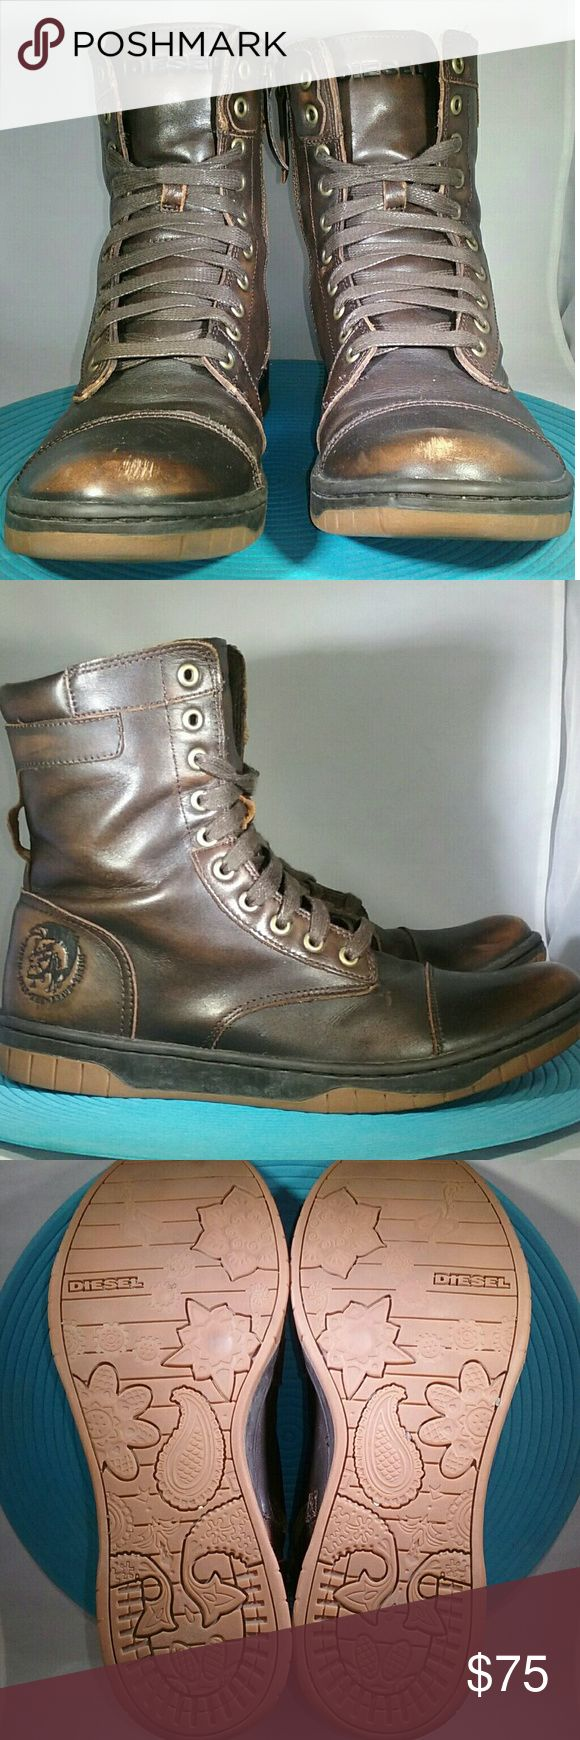 Diesel Boots- 9.5 Men's Brown, distressed, leather boots. Cap toe lace up with a fireman's zipper. Size 9.5. Gently worn.   MAKE ME AN OFFER.  I negotiate on EVERYTHING in my closet! Diesel Shoes Boots